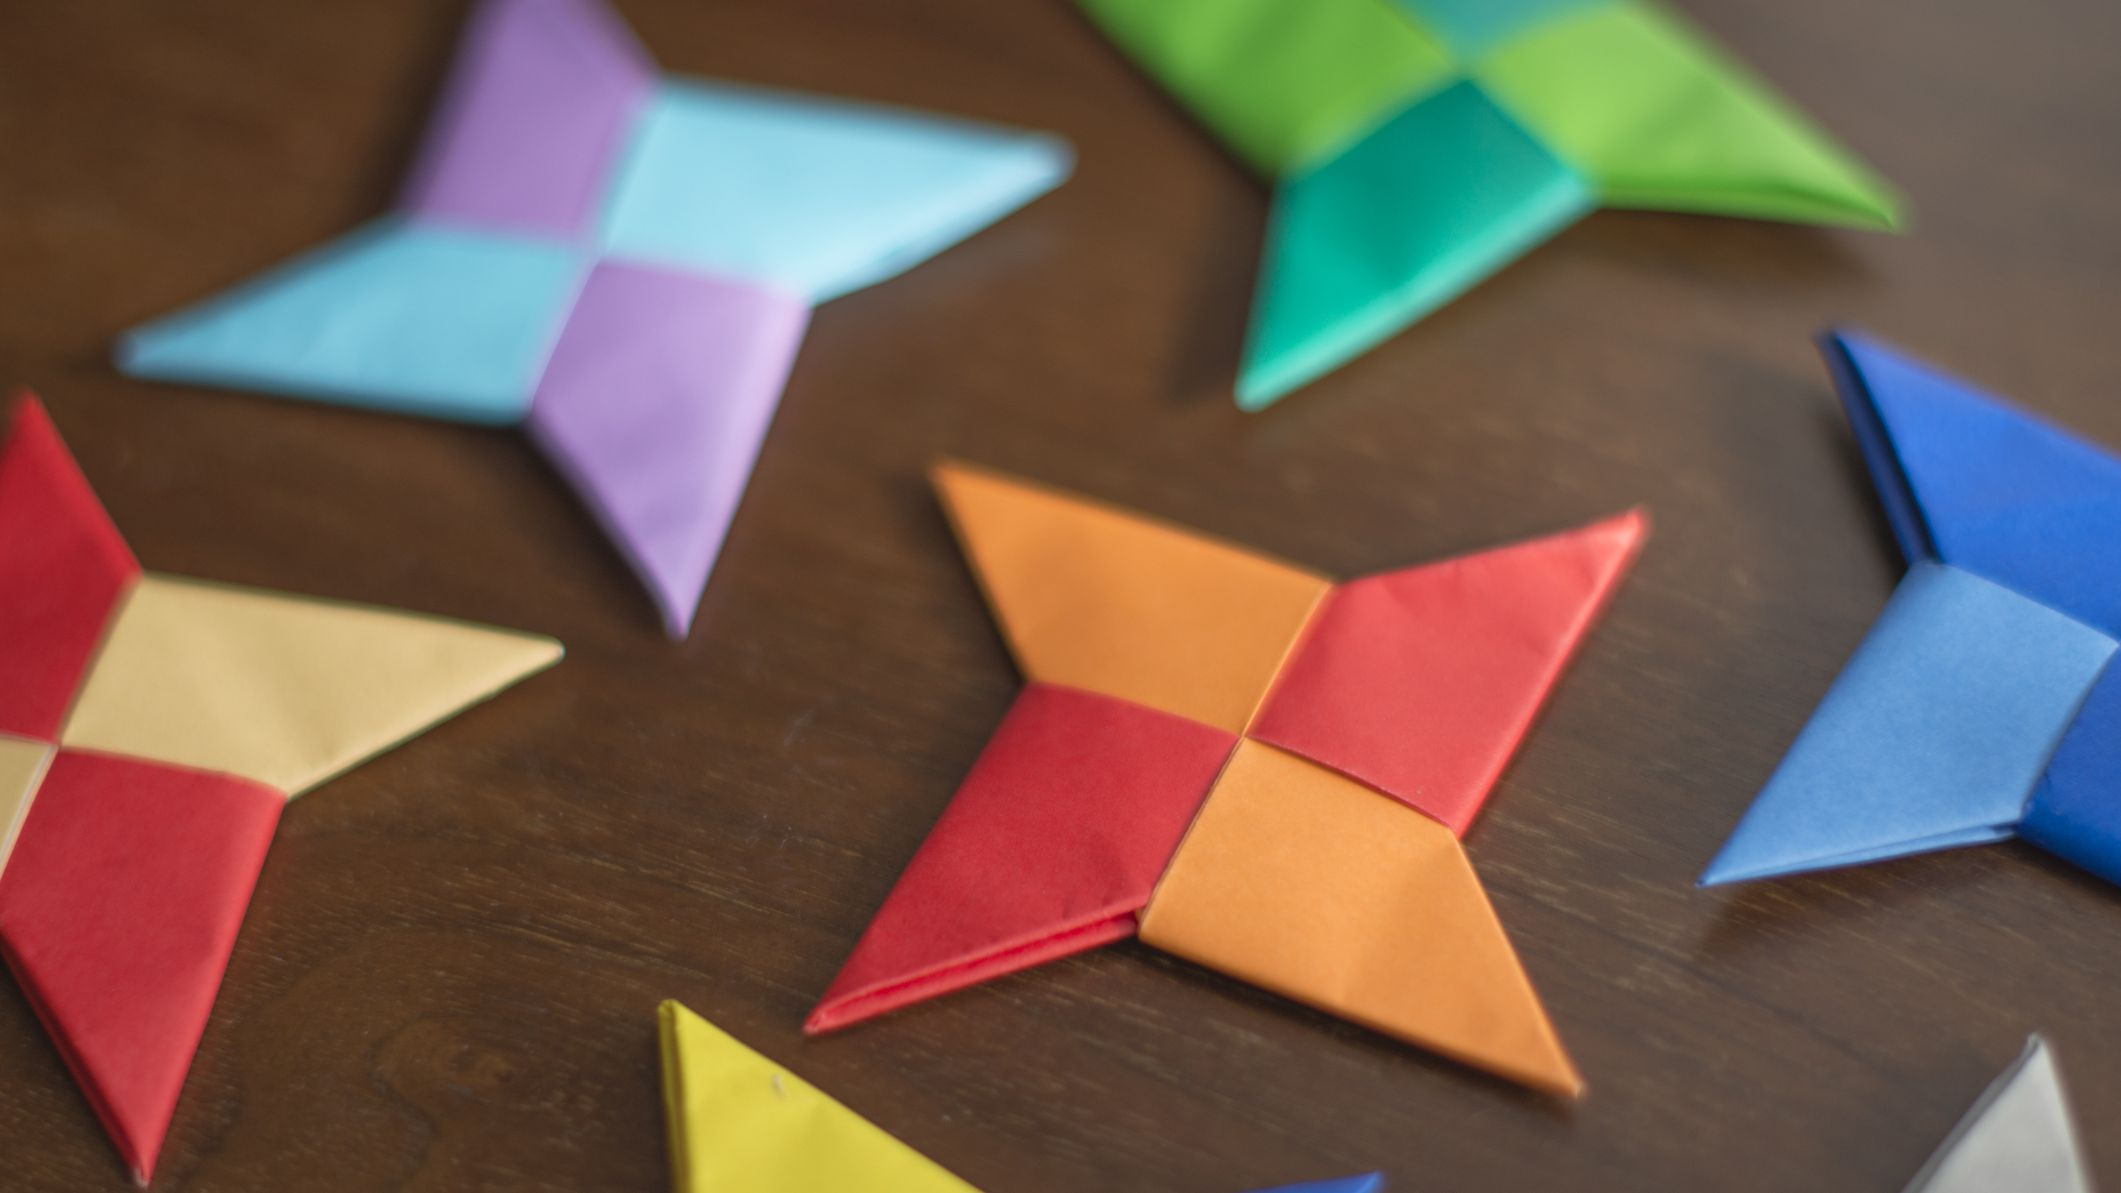 MQ Crafts - TOP 9 Origami Easy Paper Flower | Paper Craft Ideas ... | 1193x2121